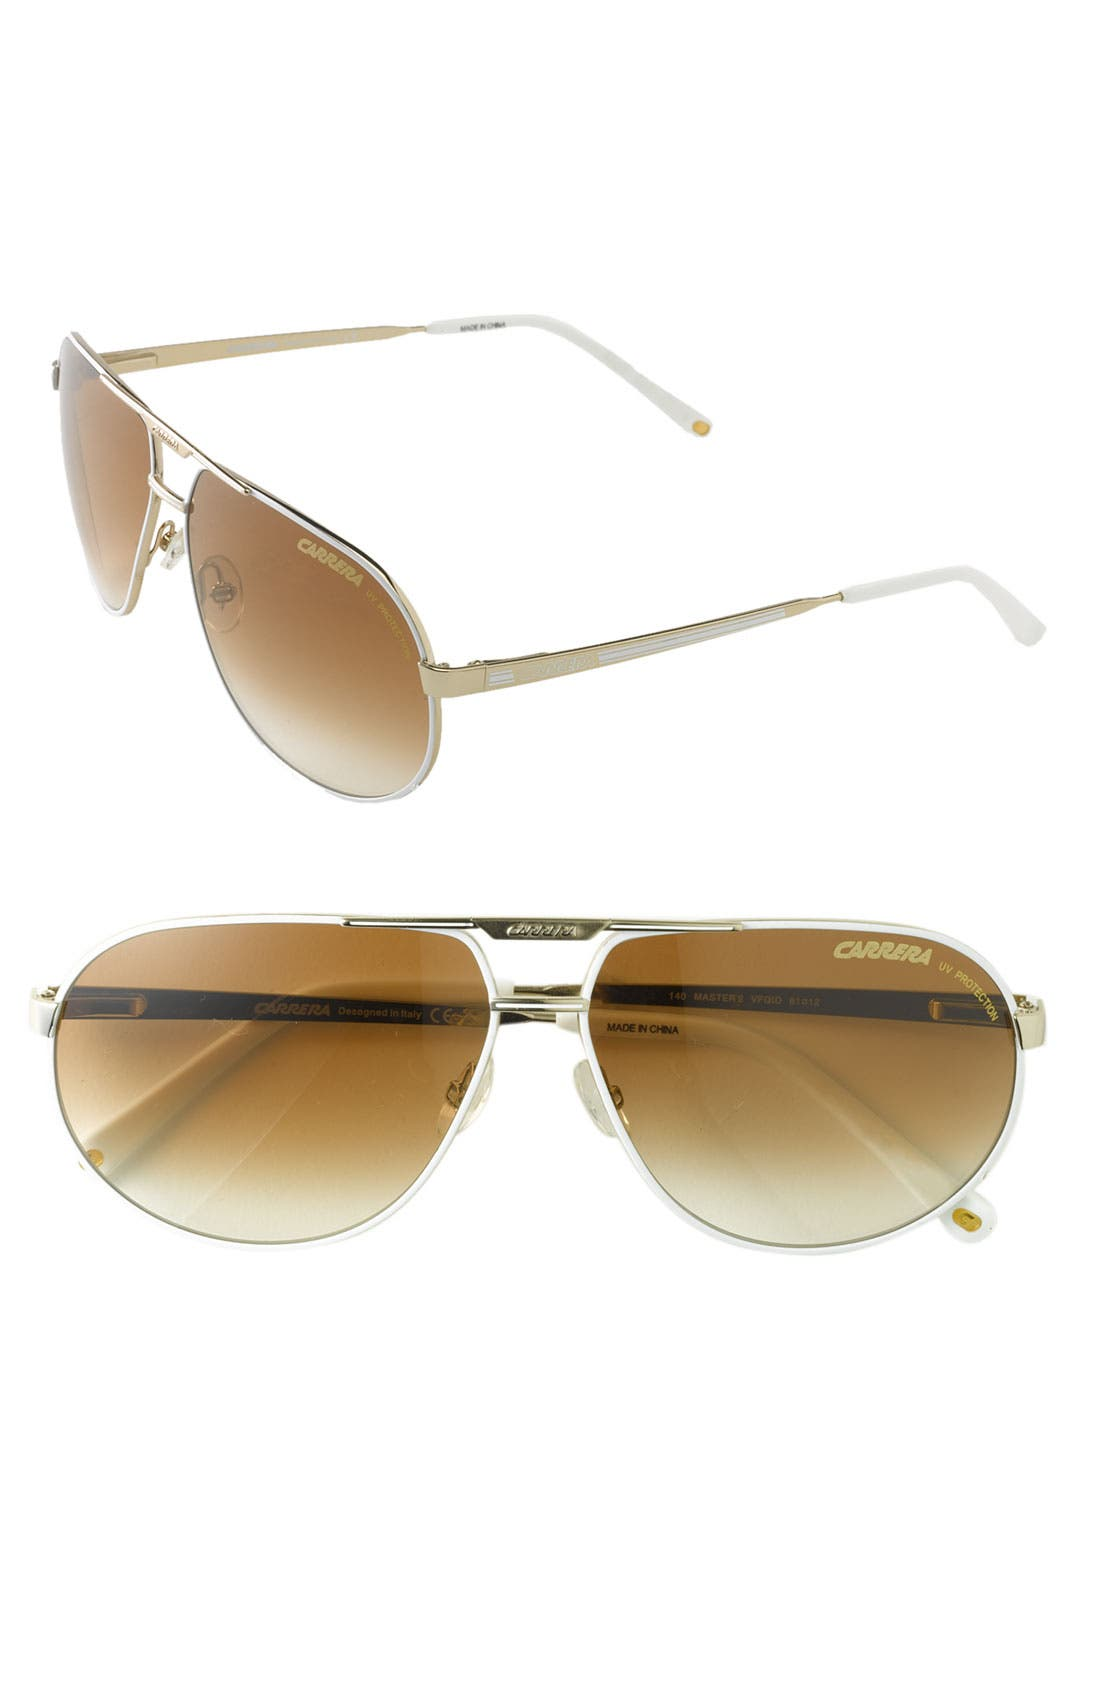 Main Image - Carrera Eyewear 'Master 2' 61mm Classic Metal Aviator Sunglasses